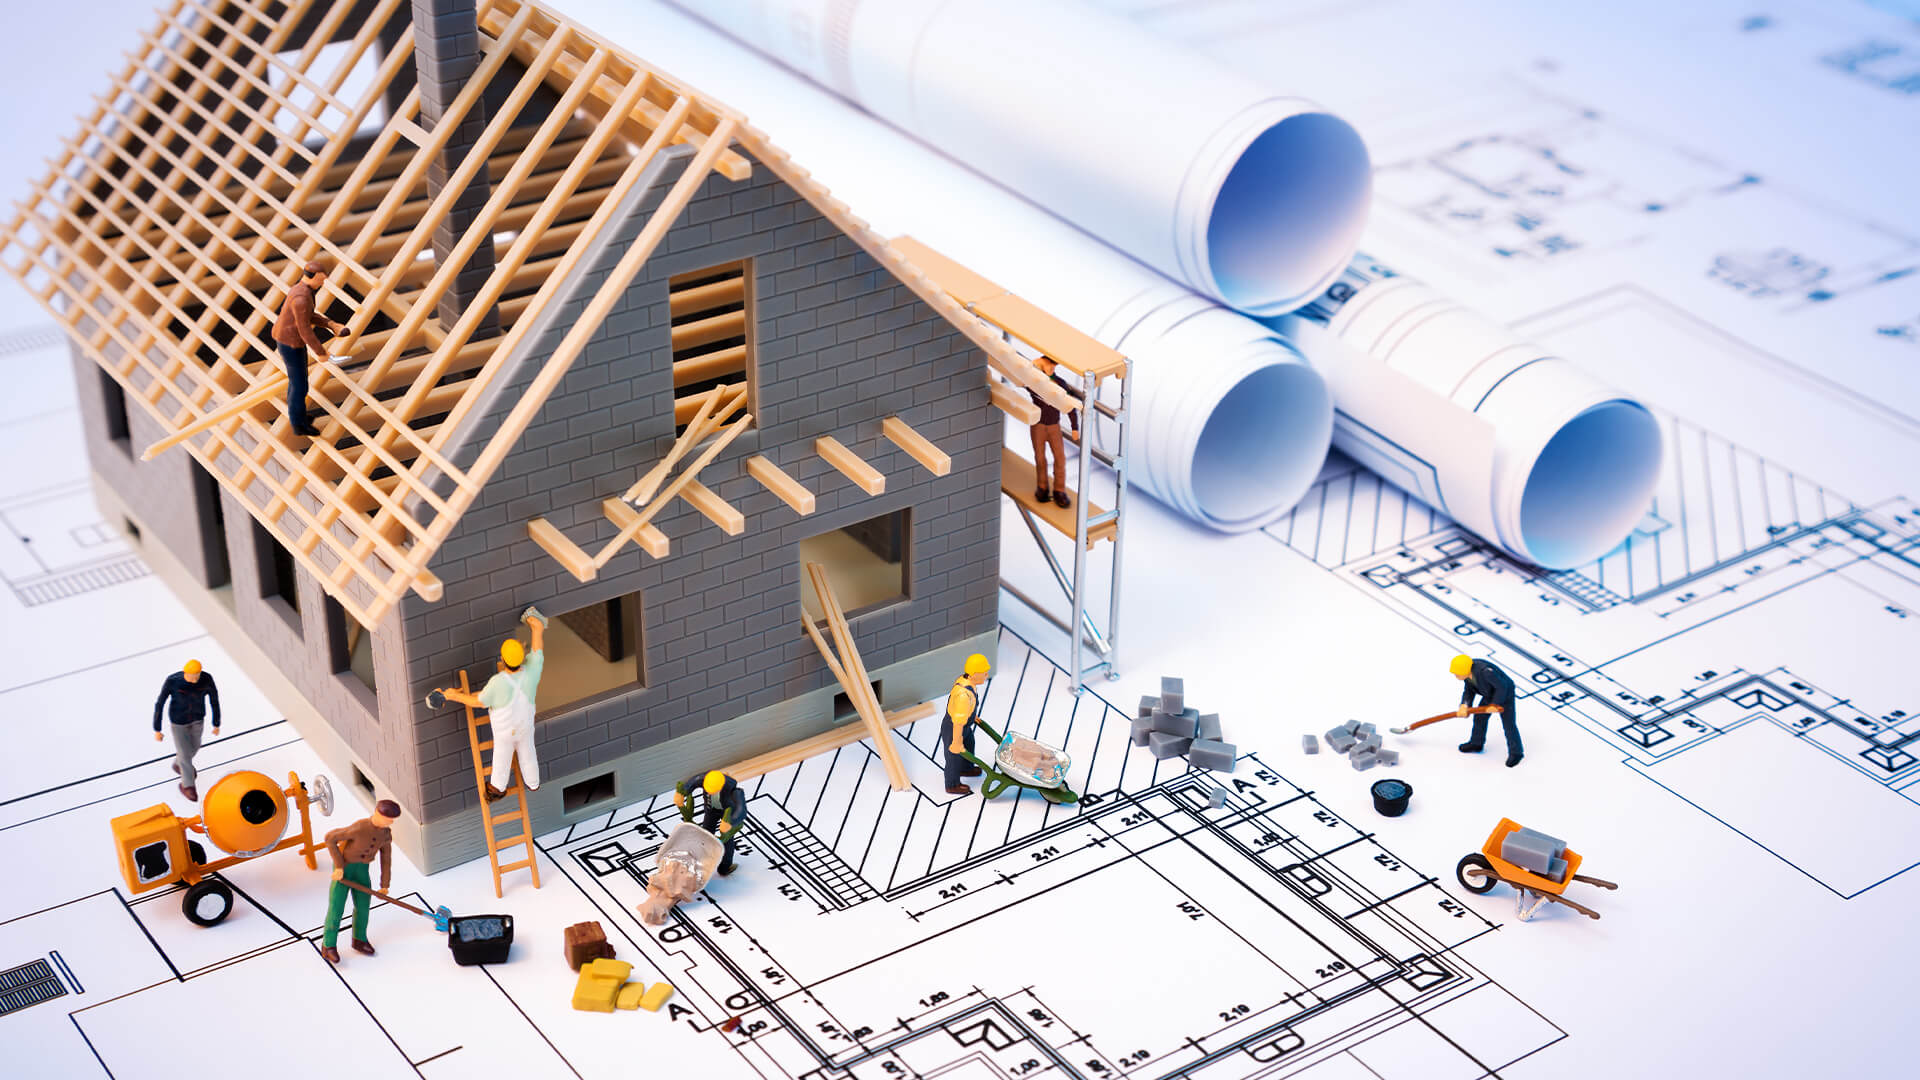 A-guide-to-construction-safety-for-homebuilders.jpg